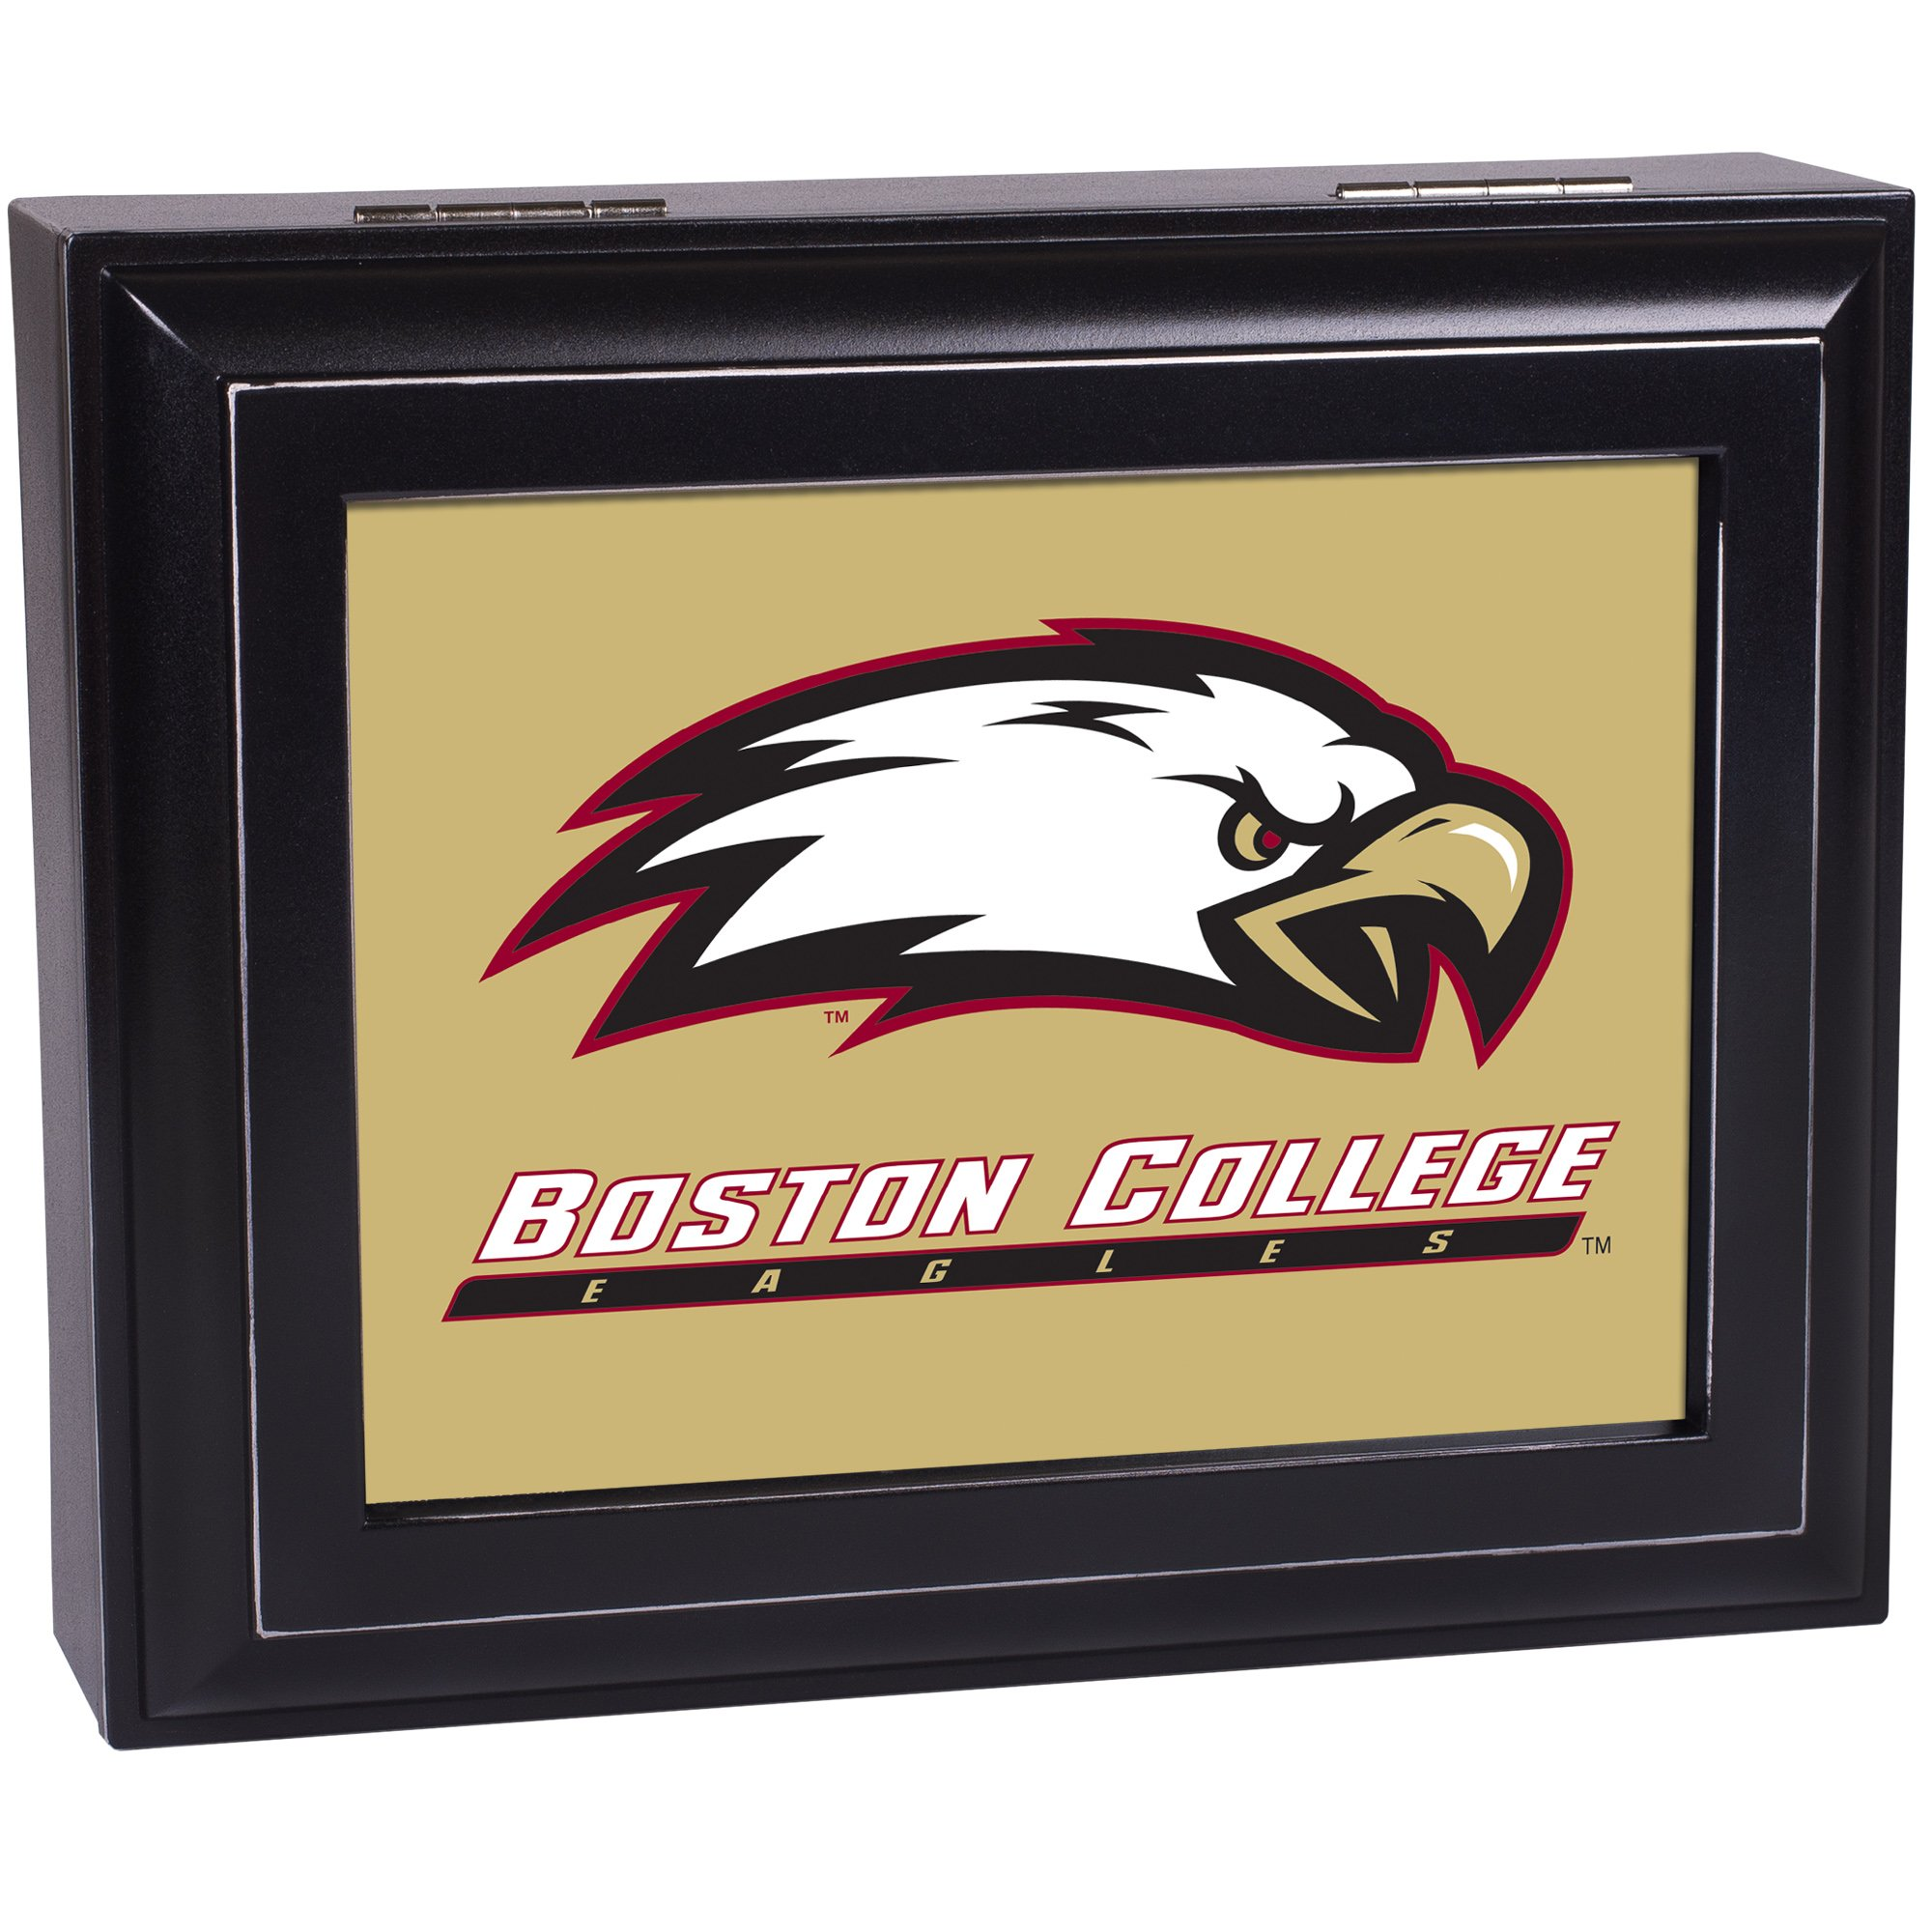 Cottage Garden Boston College Black Digital Fight Song Music Box/Valet Watch Box Plays School Fight Song